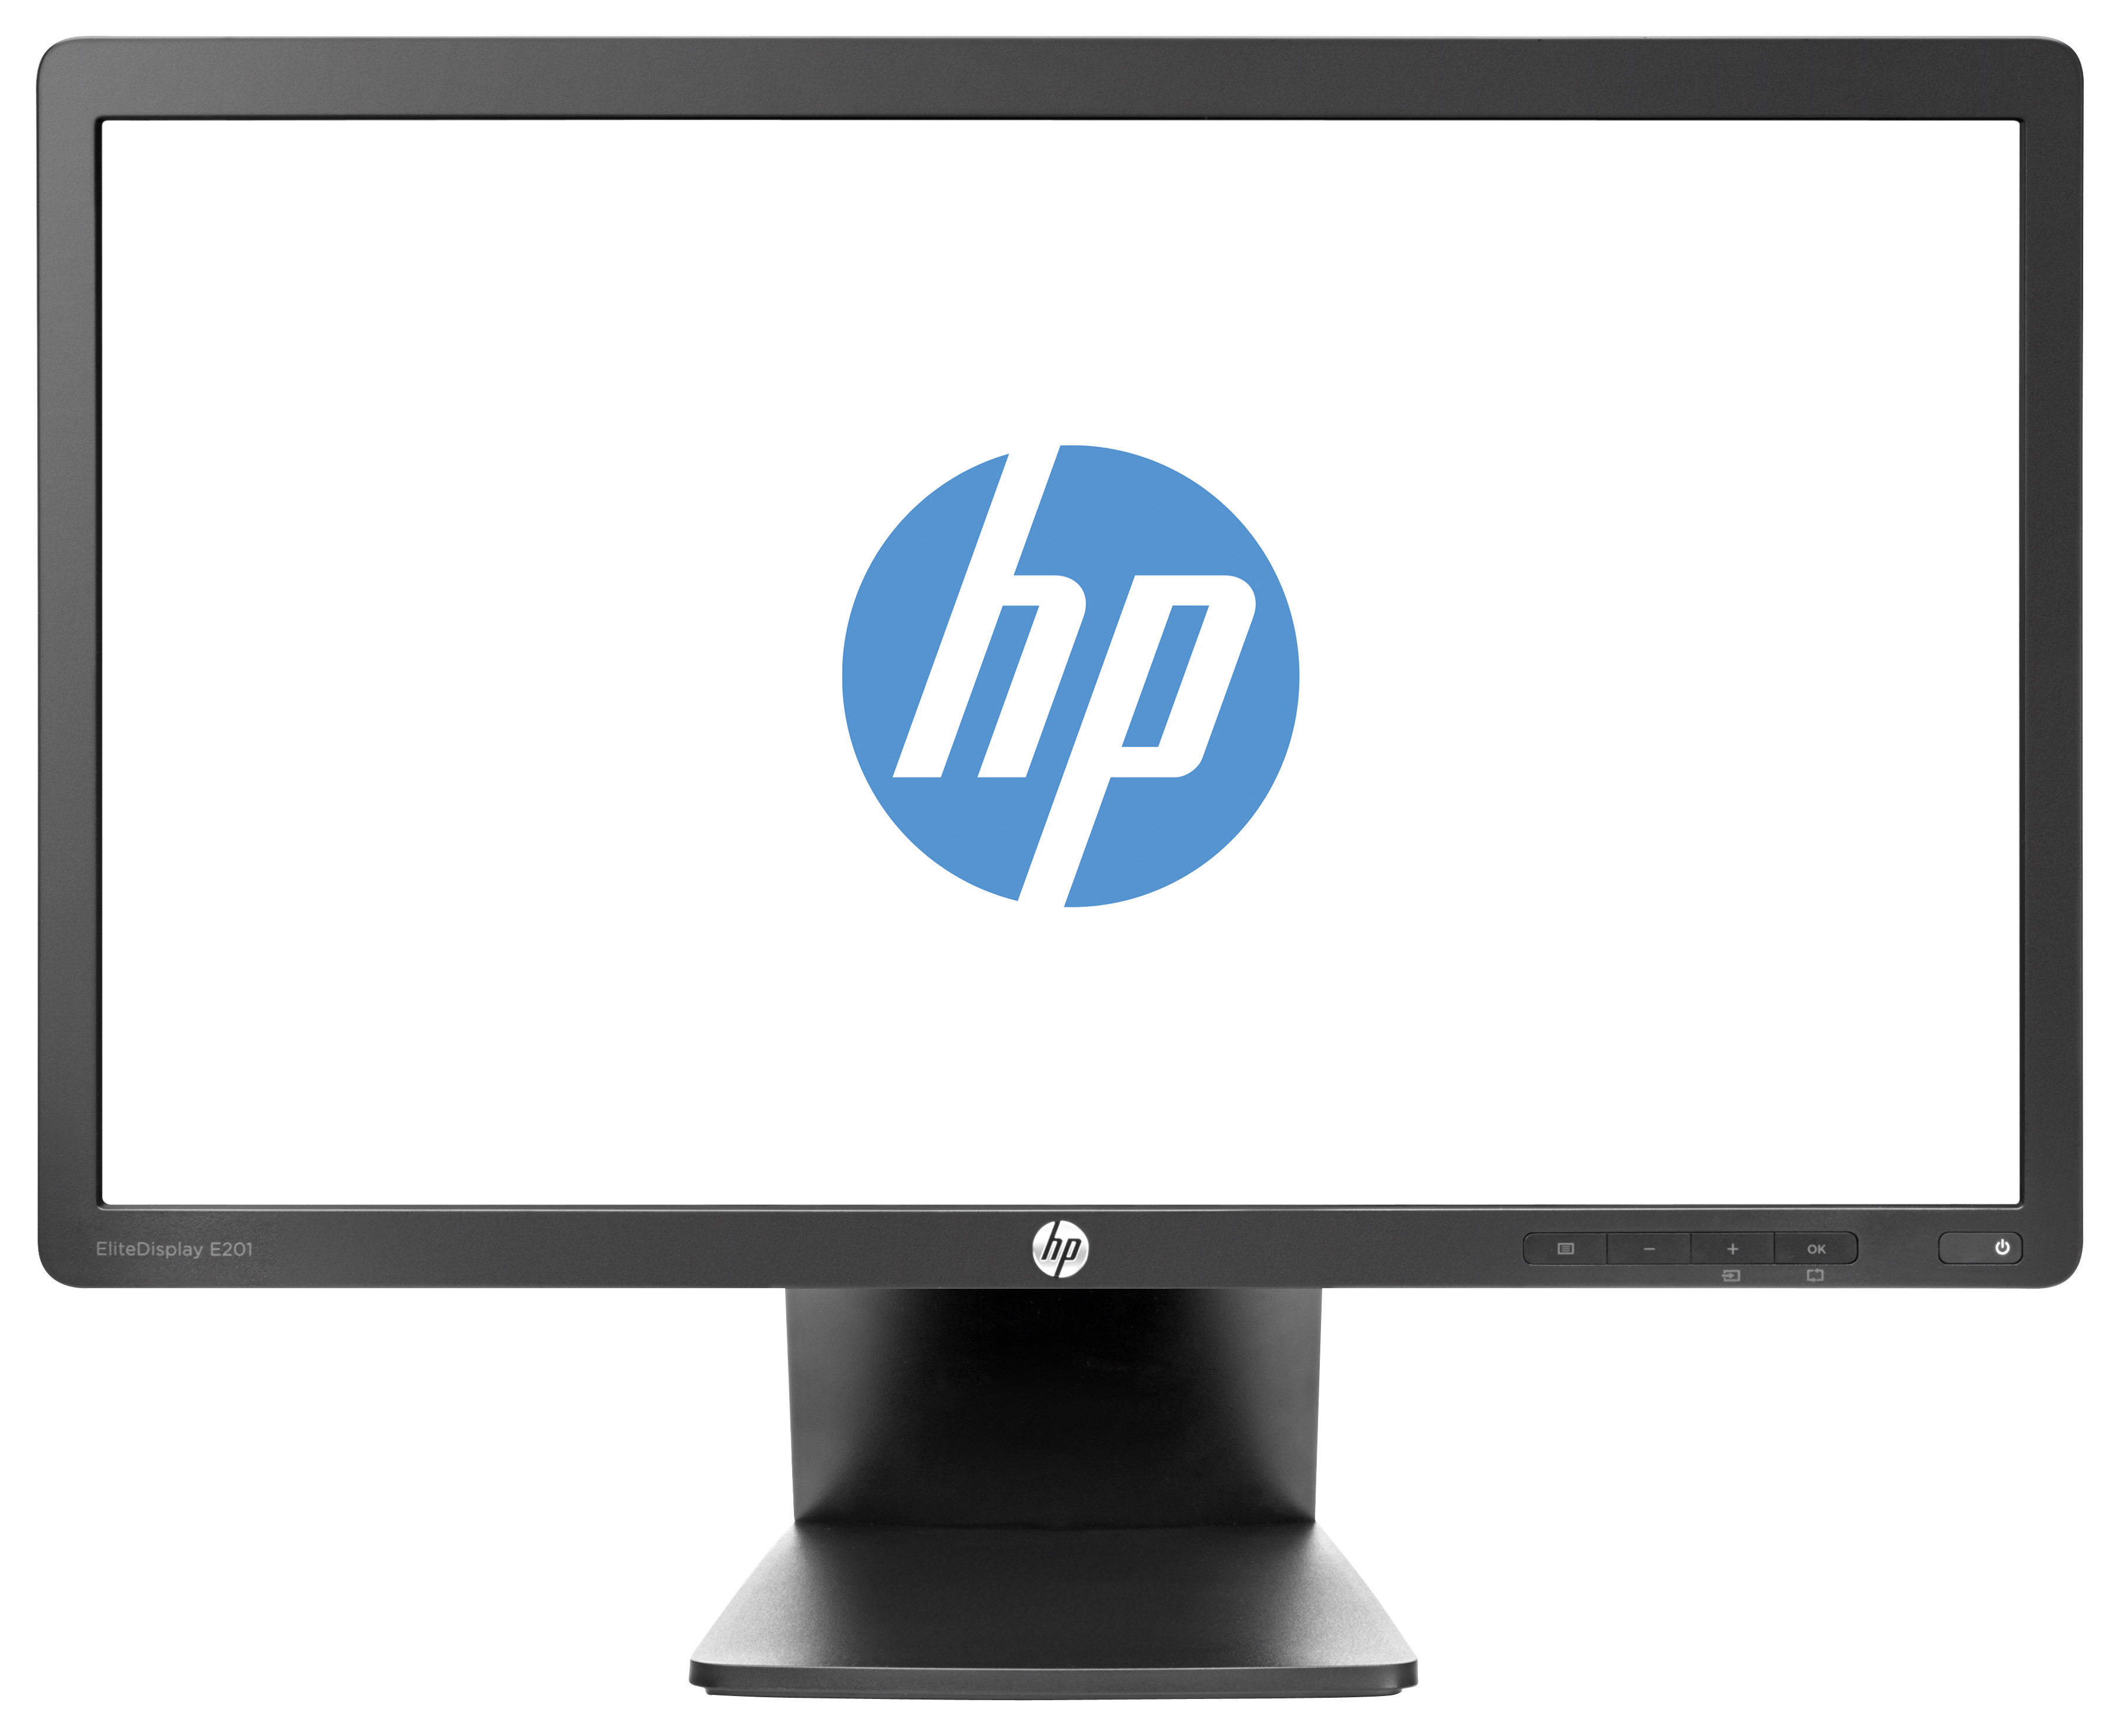 HP Elite Display E201 20 LED LCD Monitor